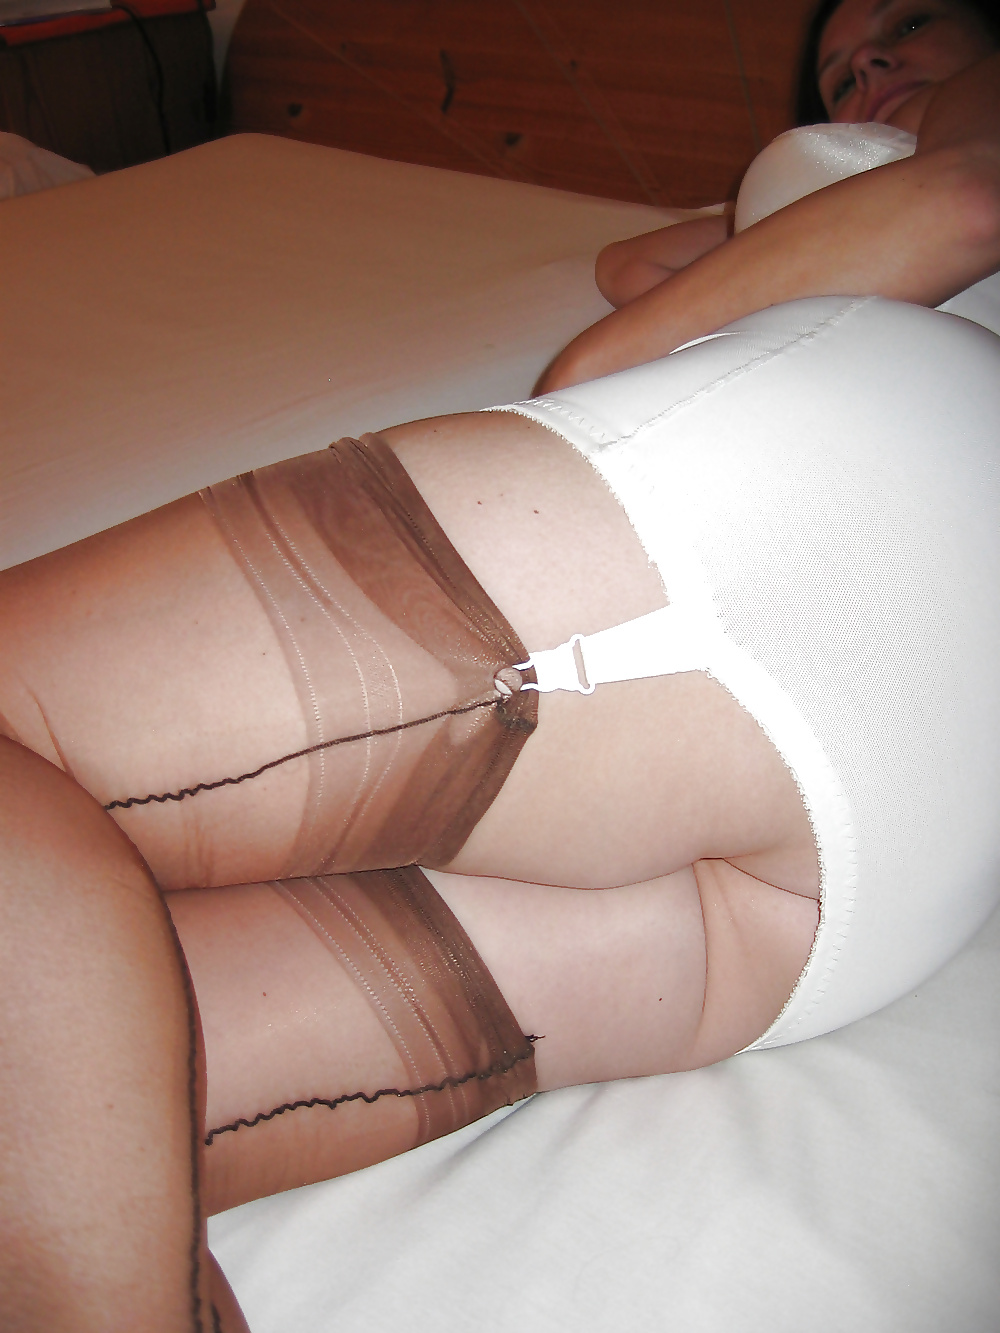 women-having-sex-wearing-girdles-candid-self-pussy